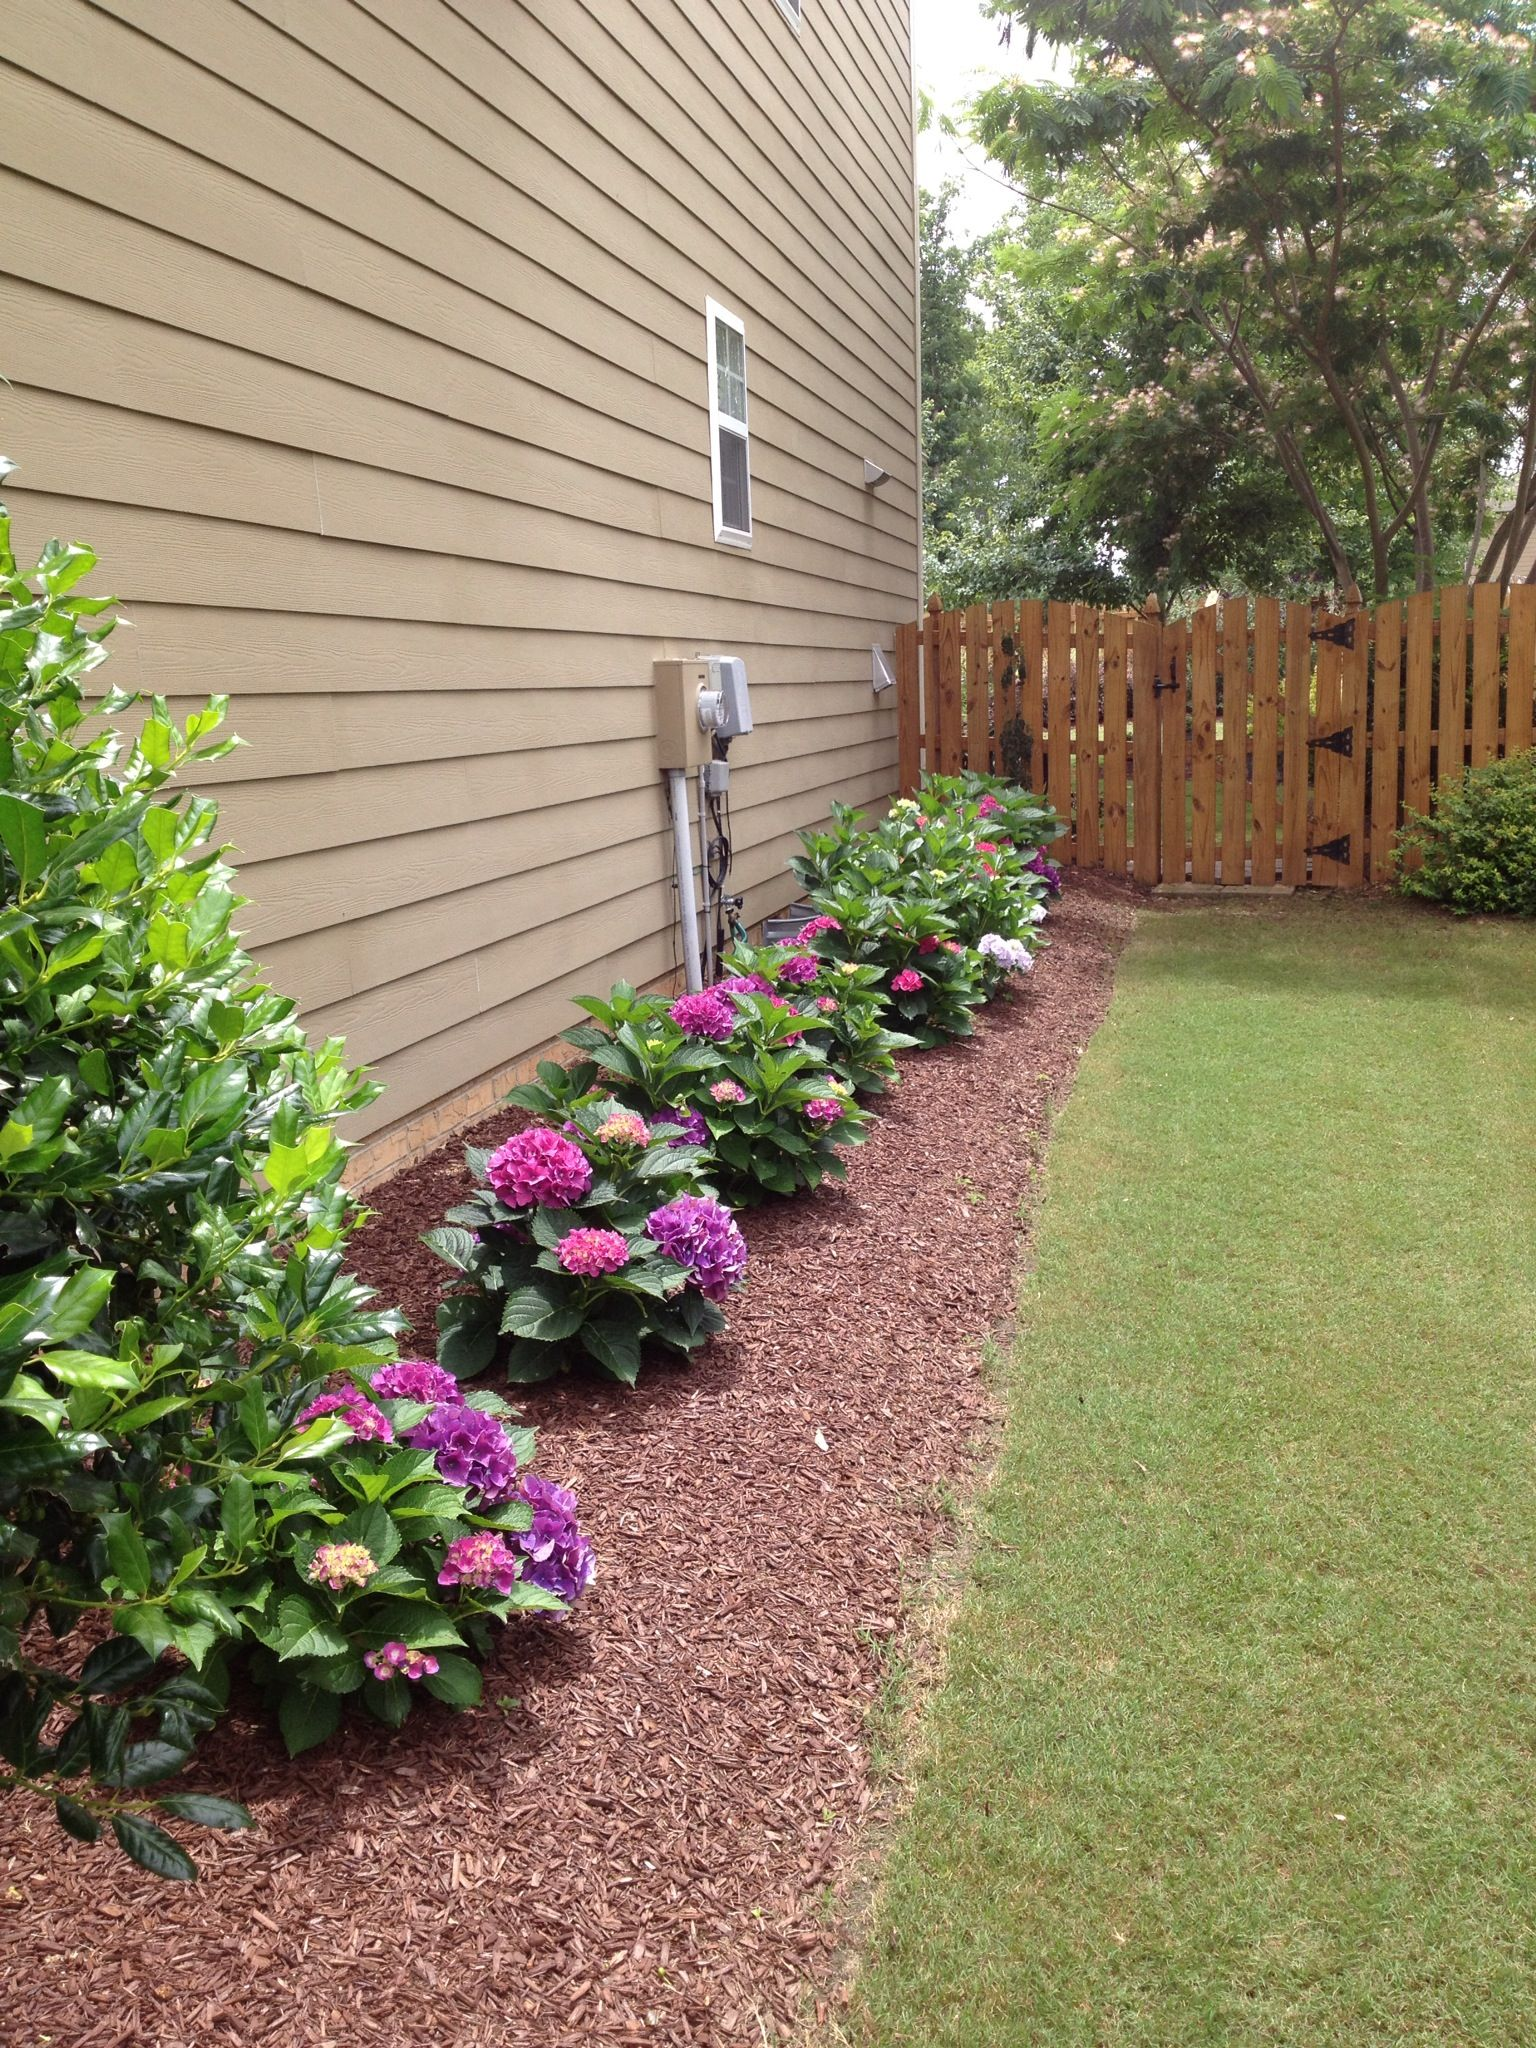 10 Cheap but creative ideas for your garden 4   Side yard ... on Front Side Yard Ideas id=19620